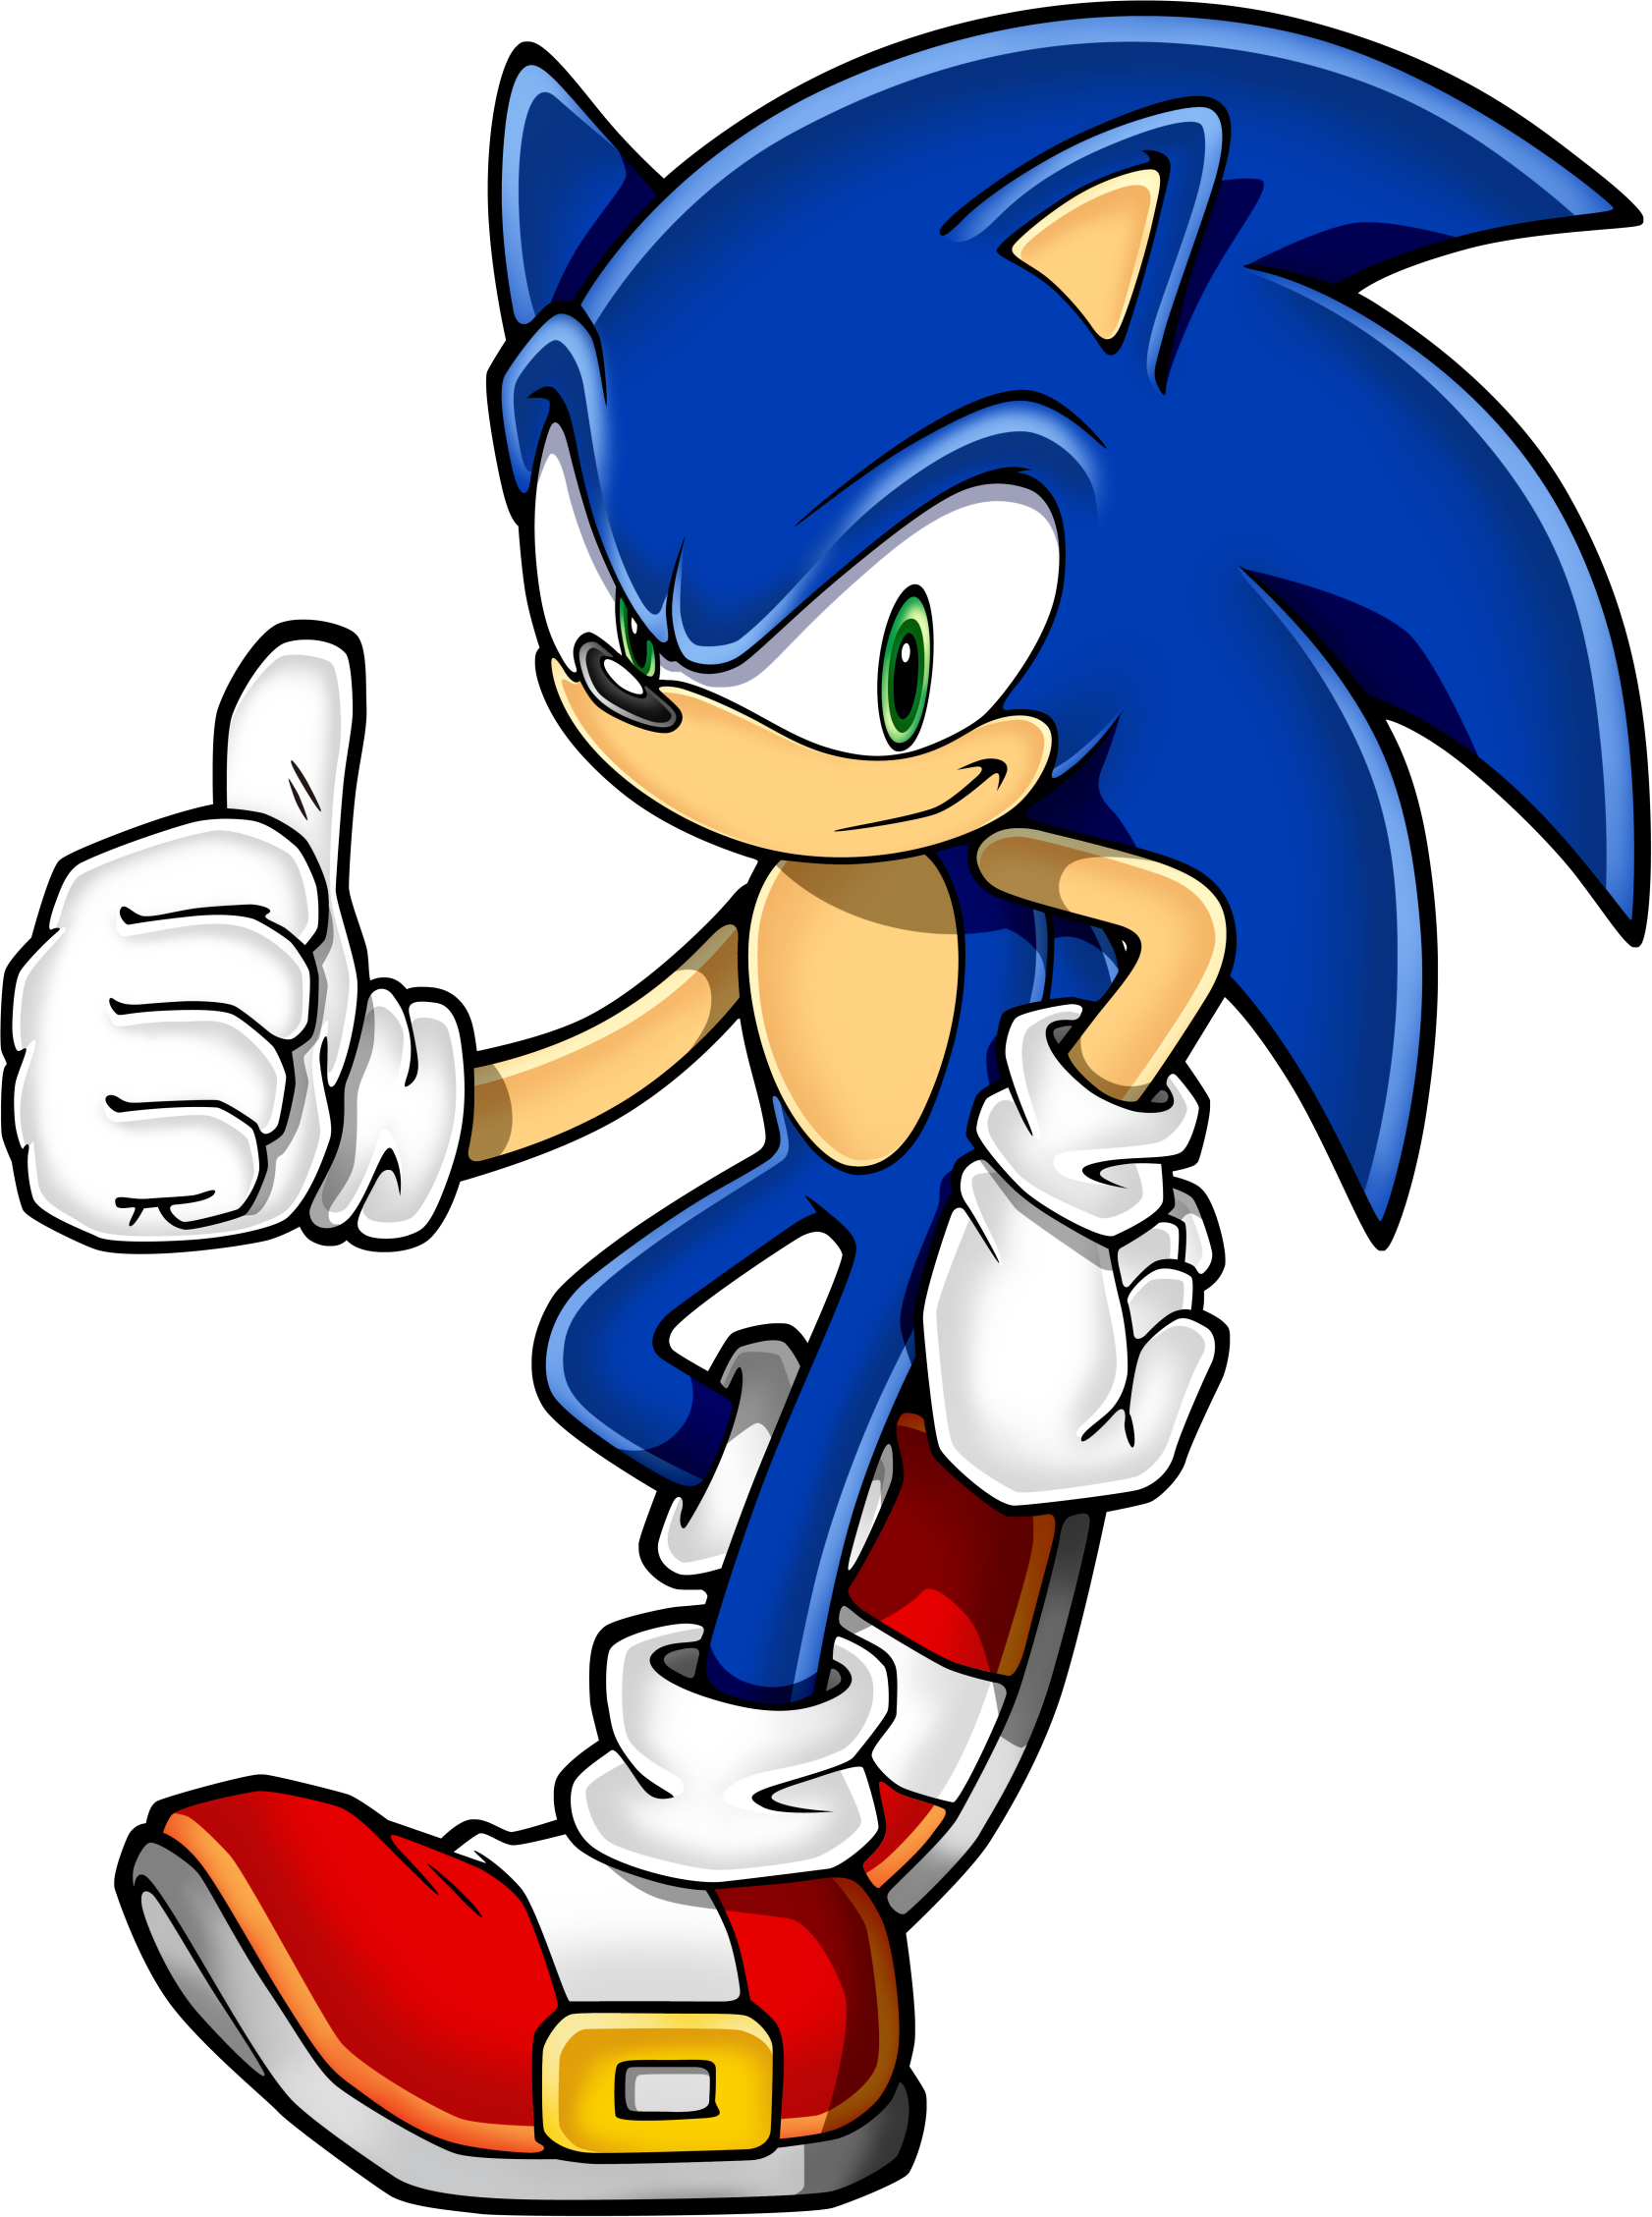 Sonic The Hedgehog Png 3607 Png Images Pngio